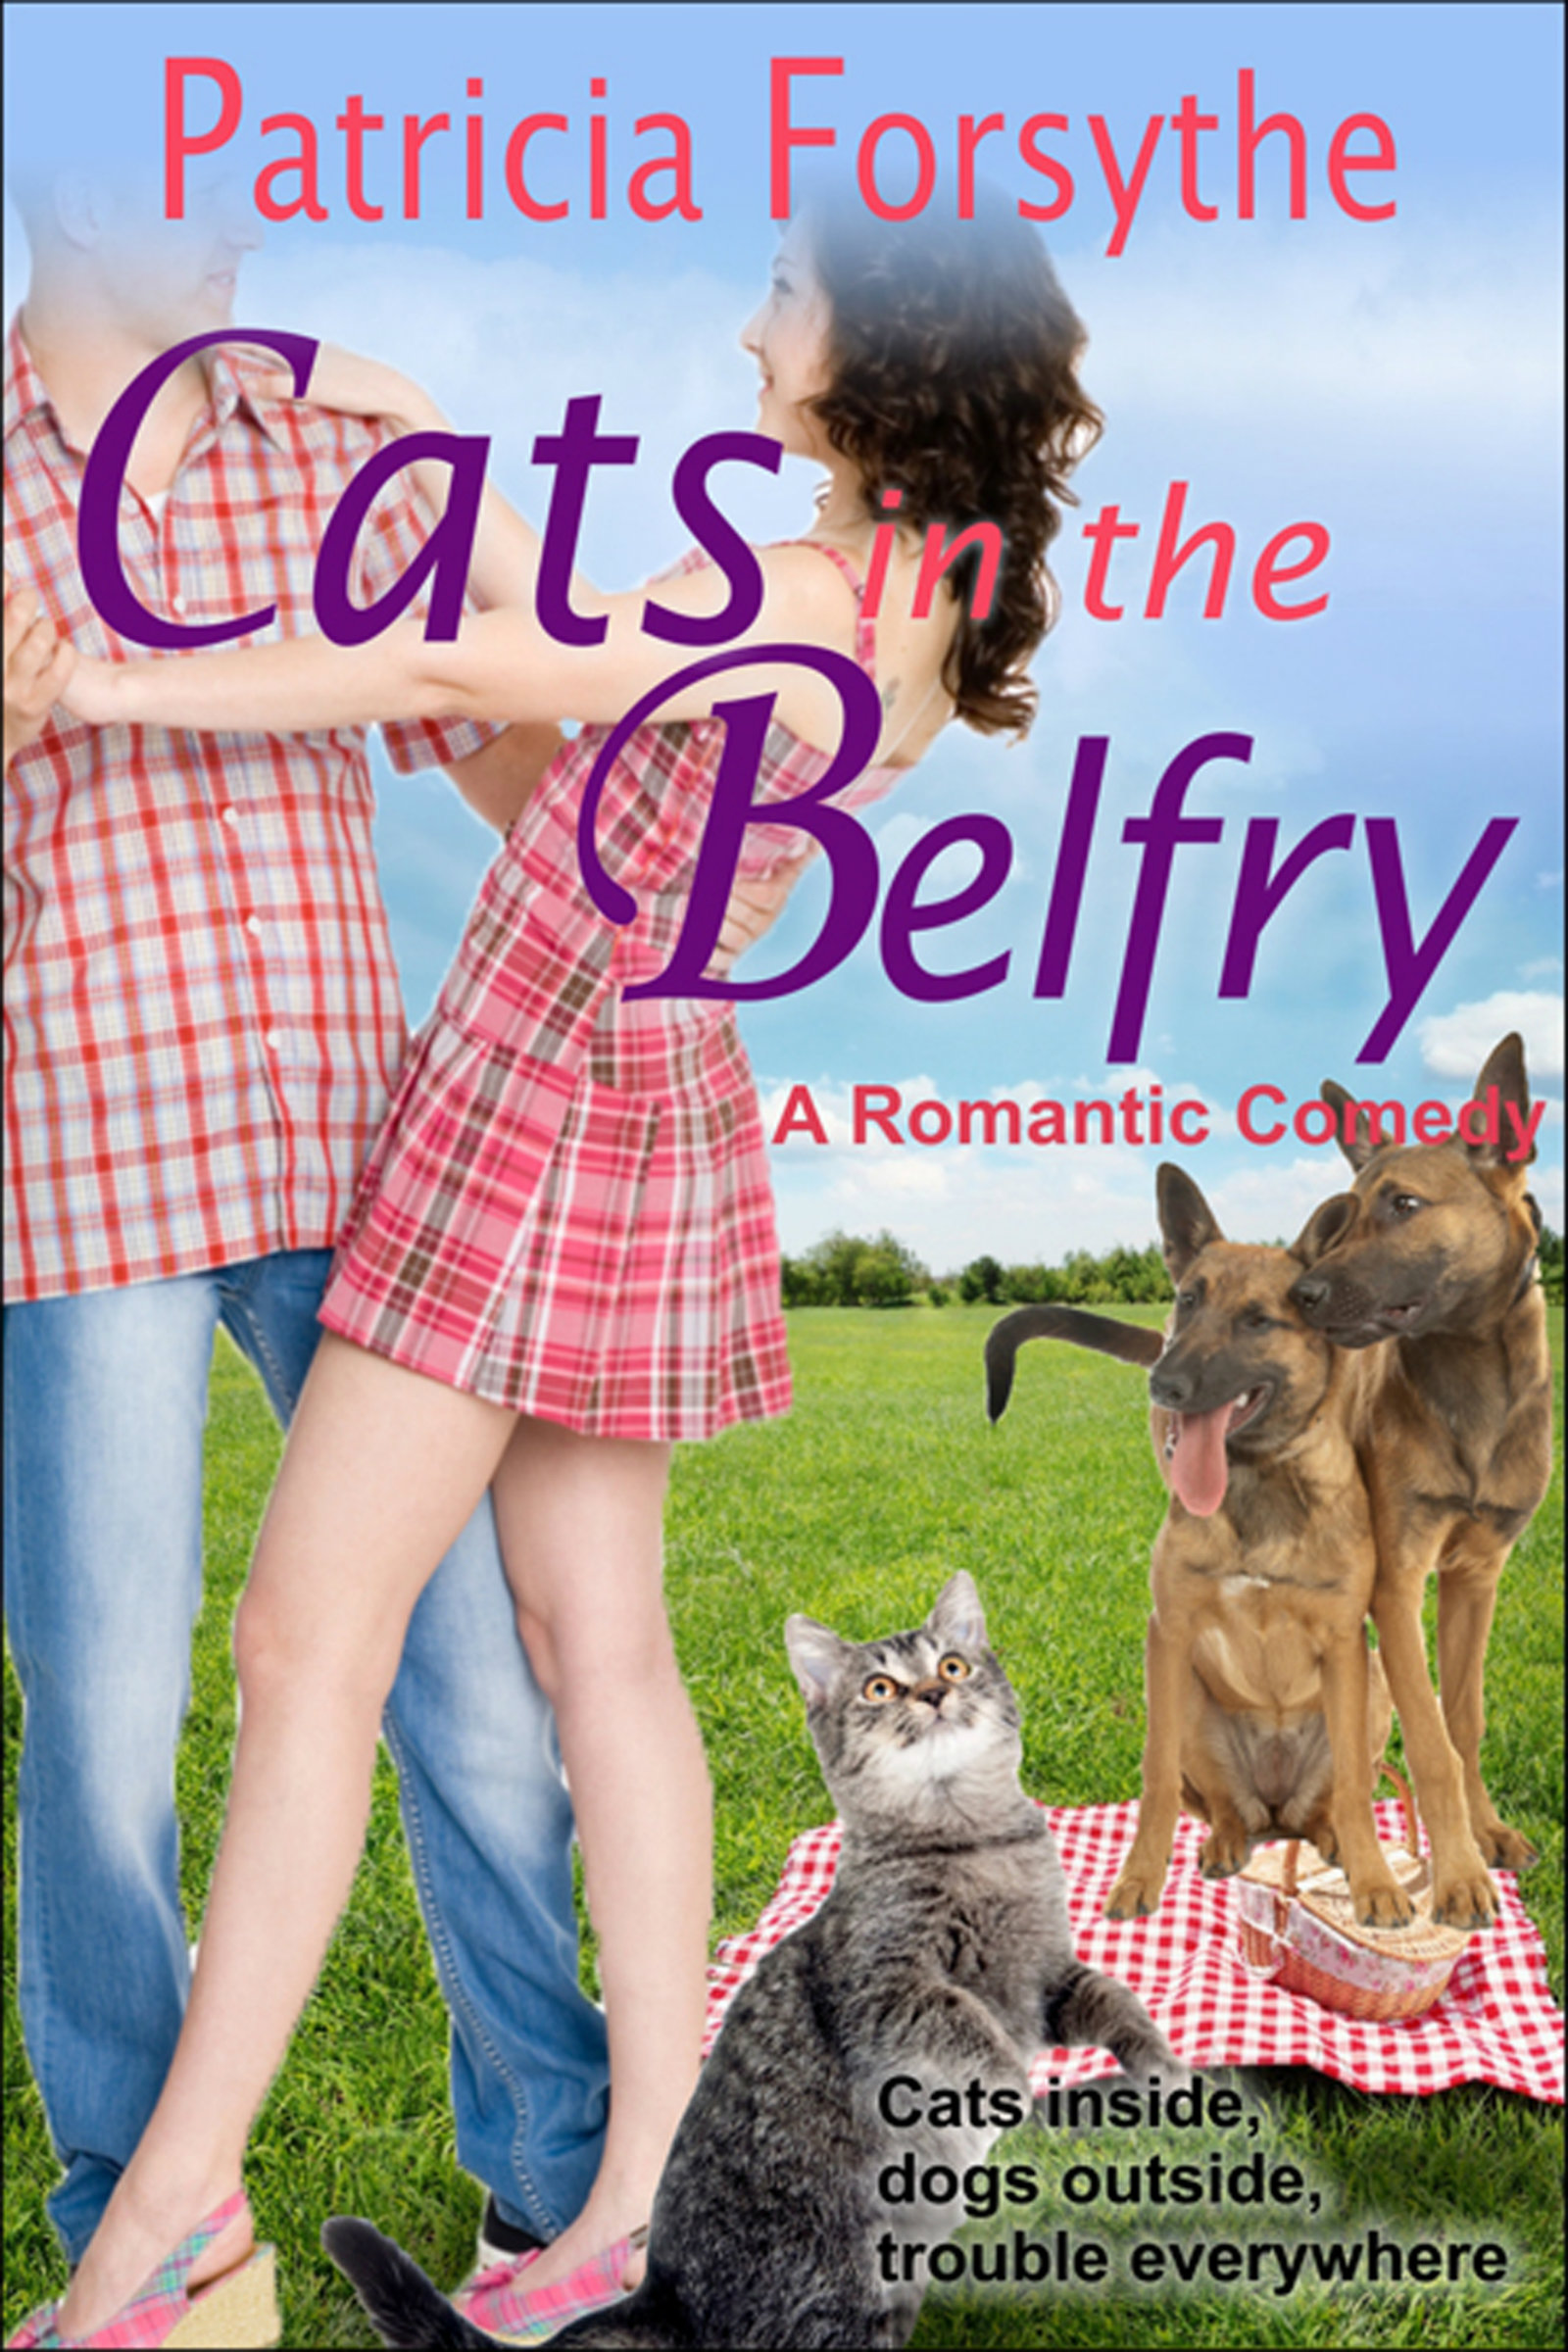 Patricia Forsythe - Cats In The Belfry